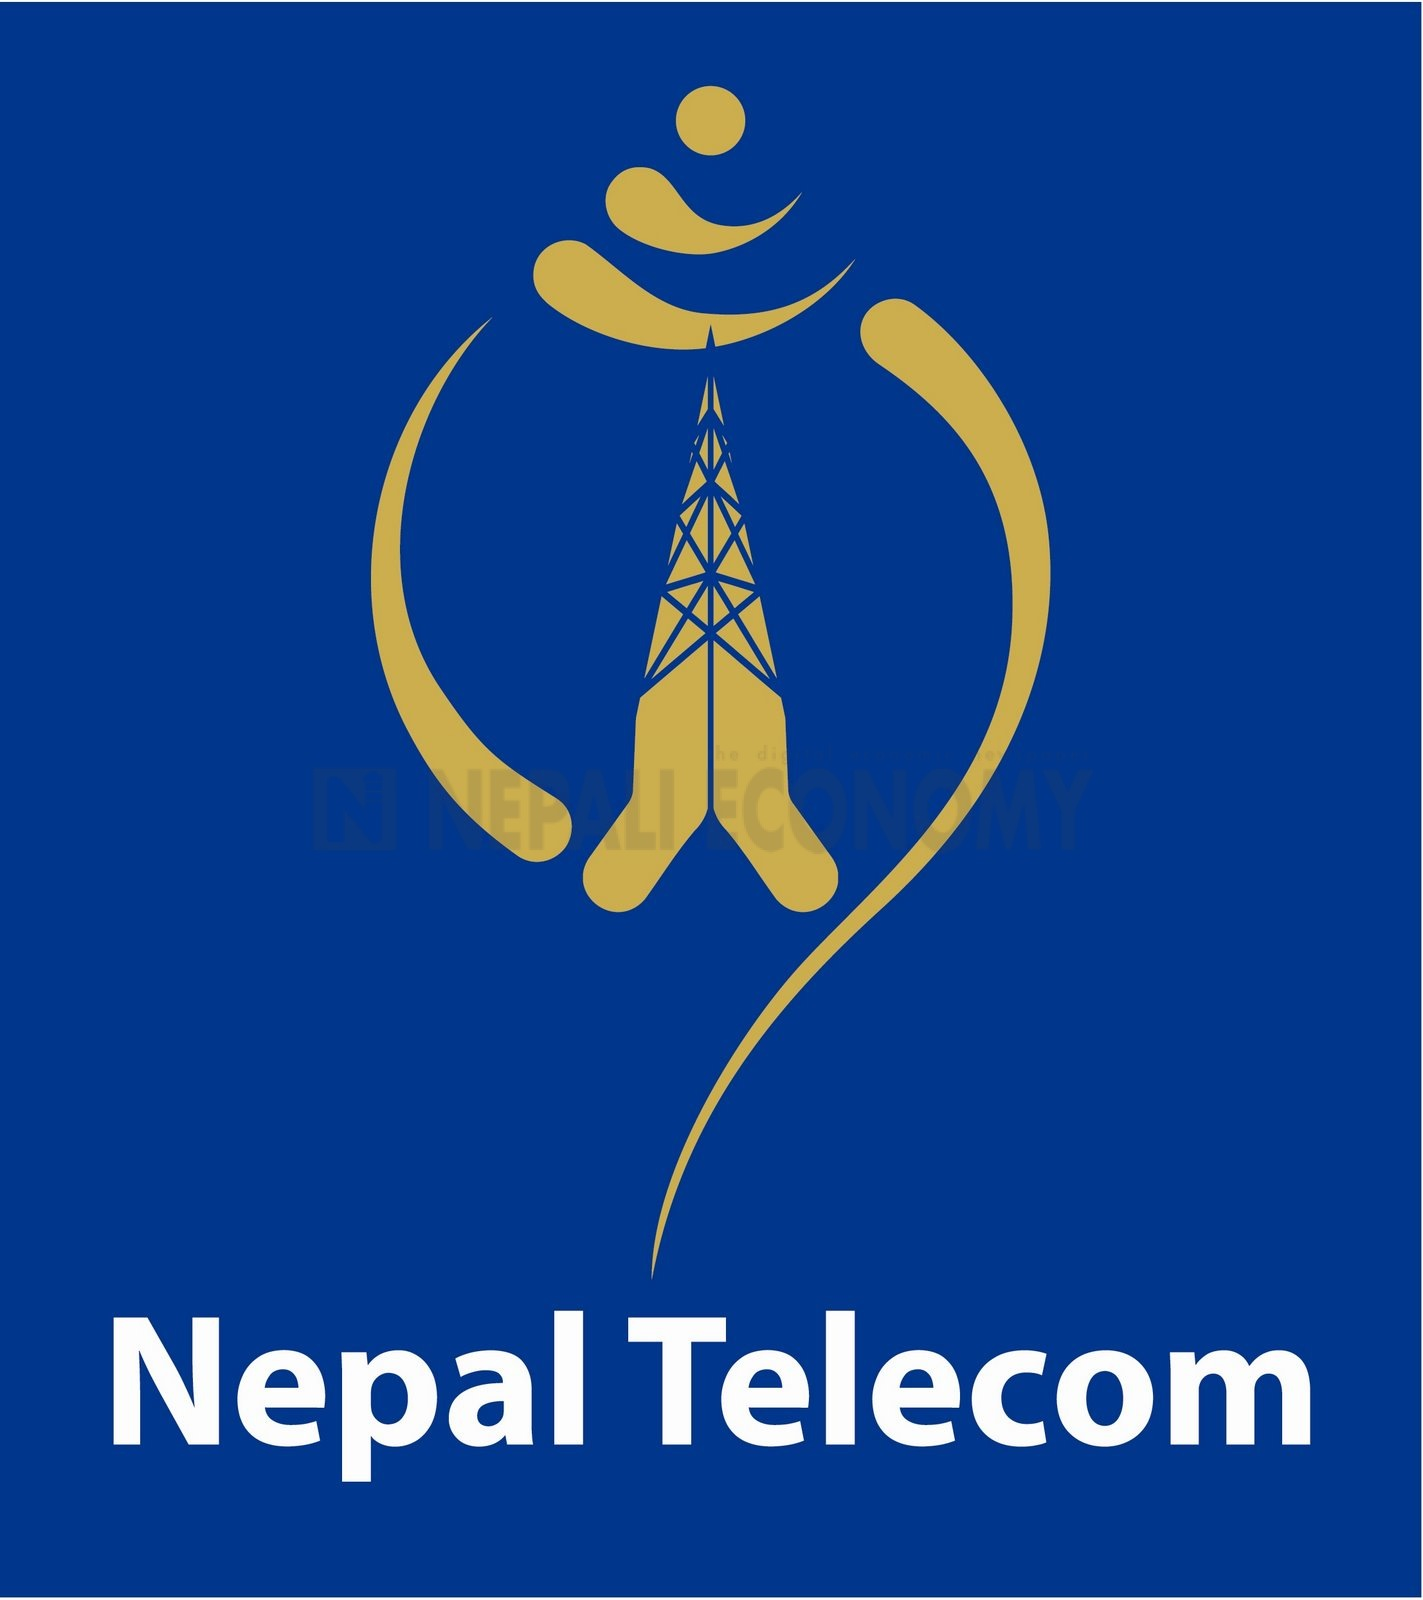 Ministry directs regulator to renew Nepal Telecom's mobile licence